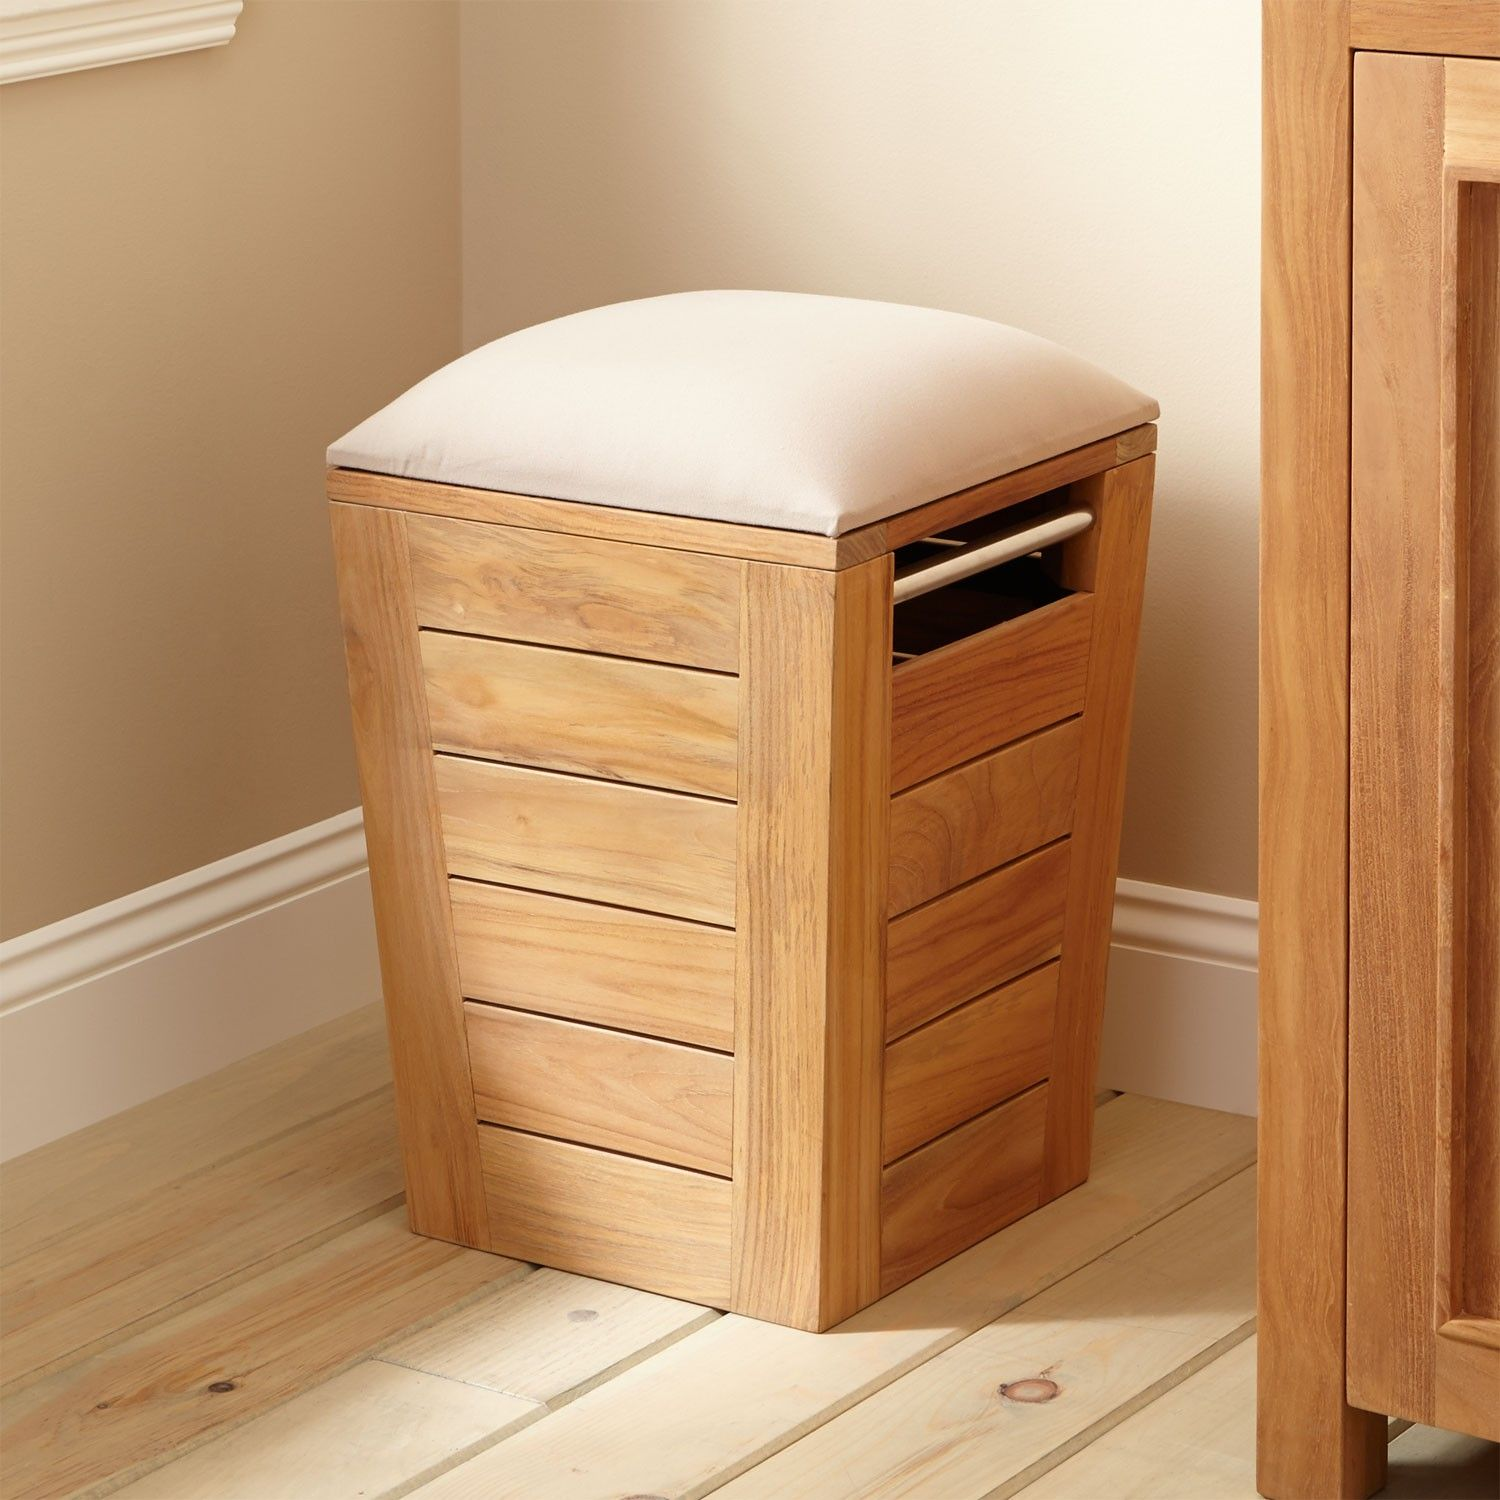 Teaklaundryhamperstool Small Laundry Hamper Bathroom